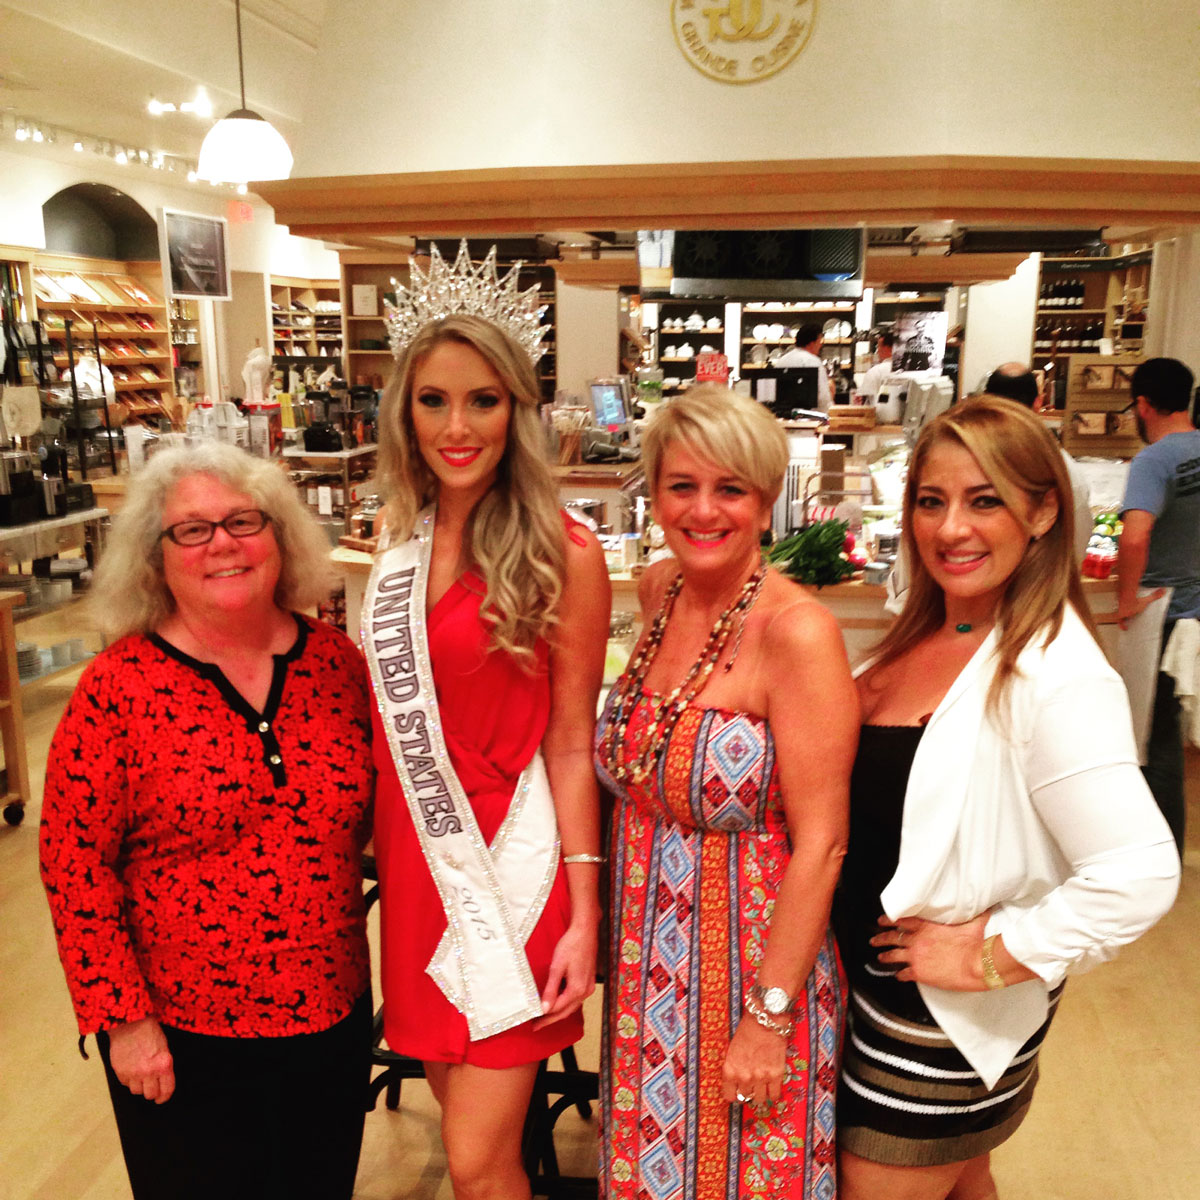 Judges-with-Ms-United-States-2015-Celine-Pelofi-of-Florida